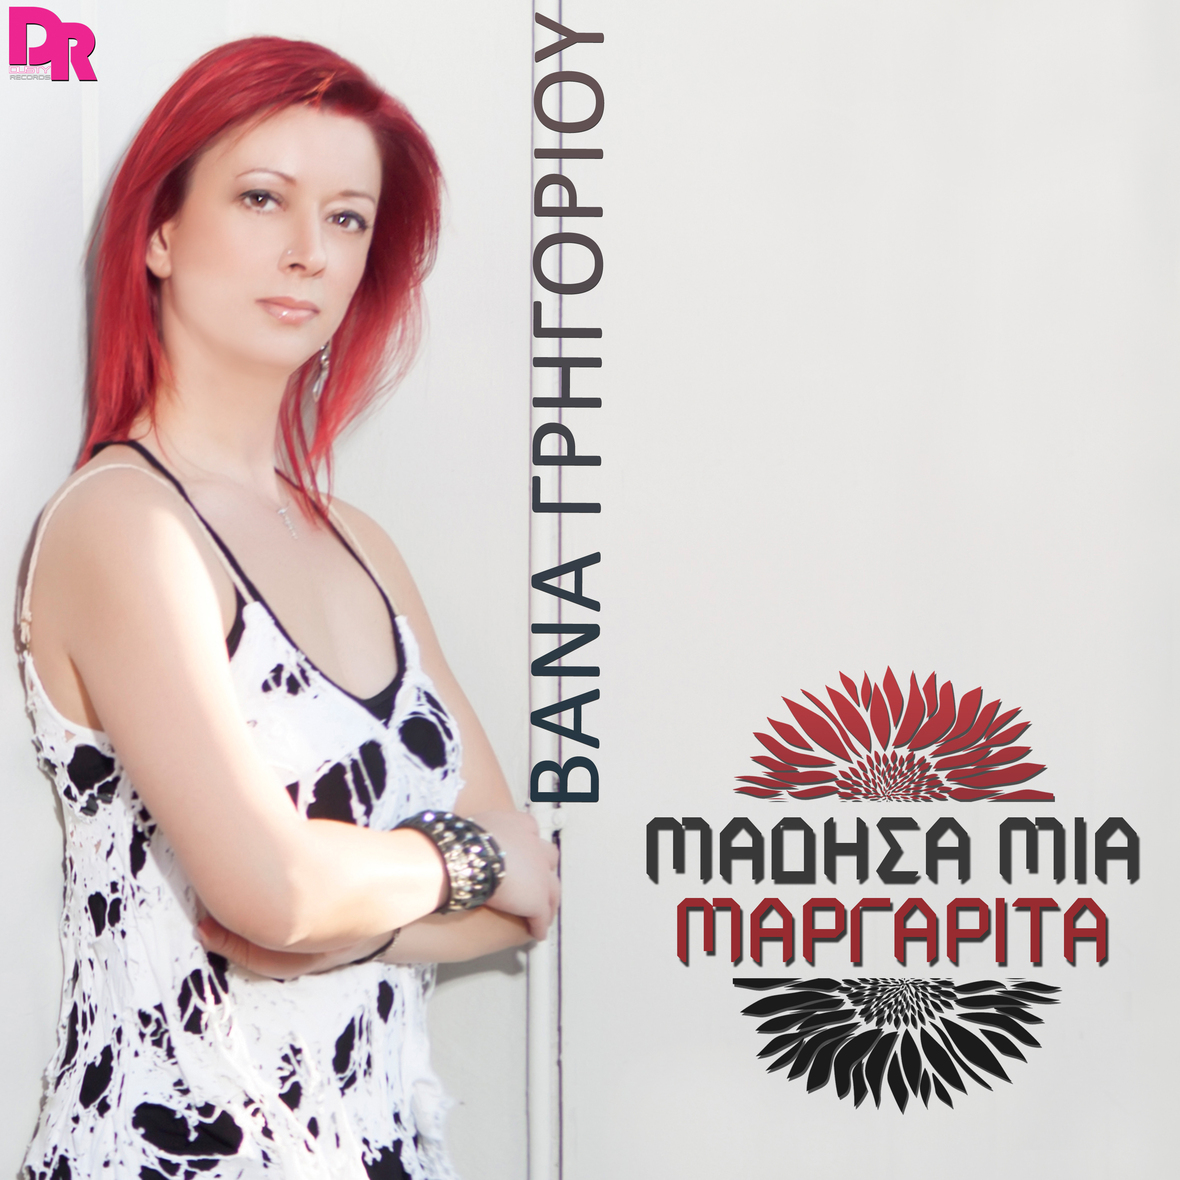 Bana Grigoriou - Madisa mia margarita  Digital Single Cover